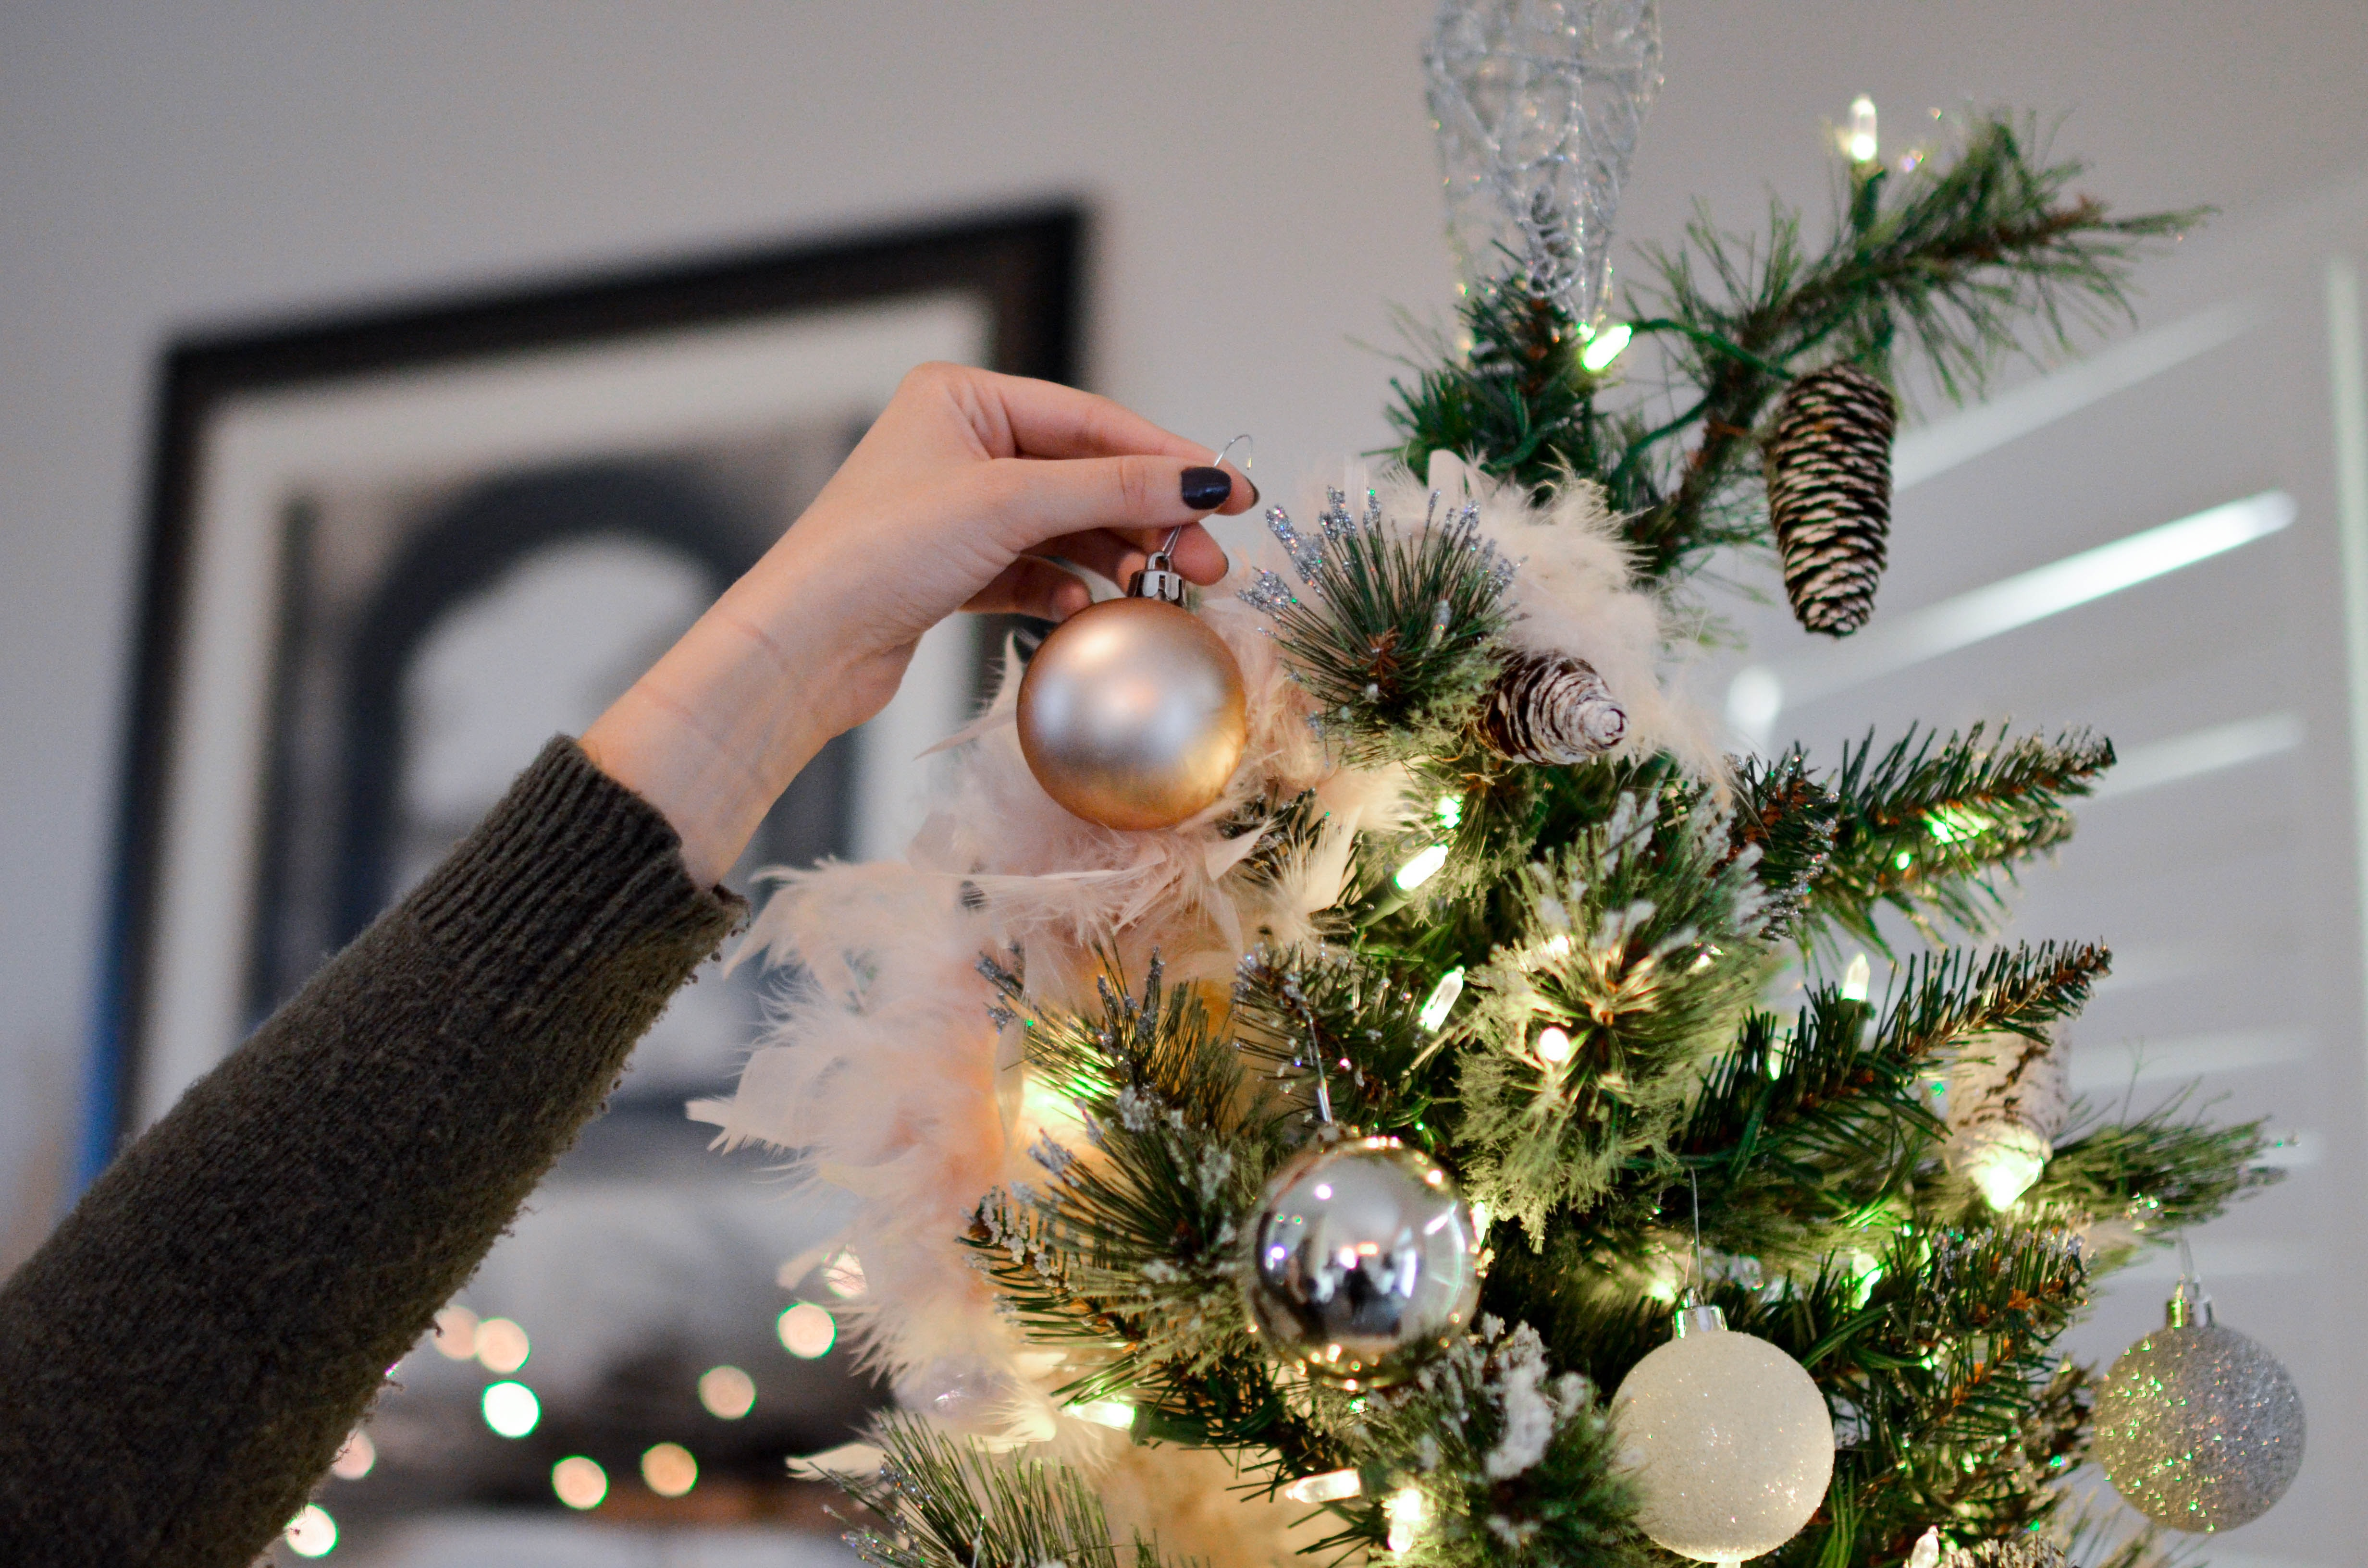 person putting bauble on top of Christmas tree